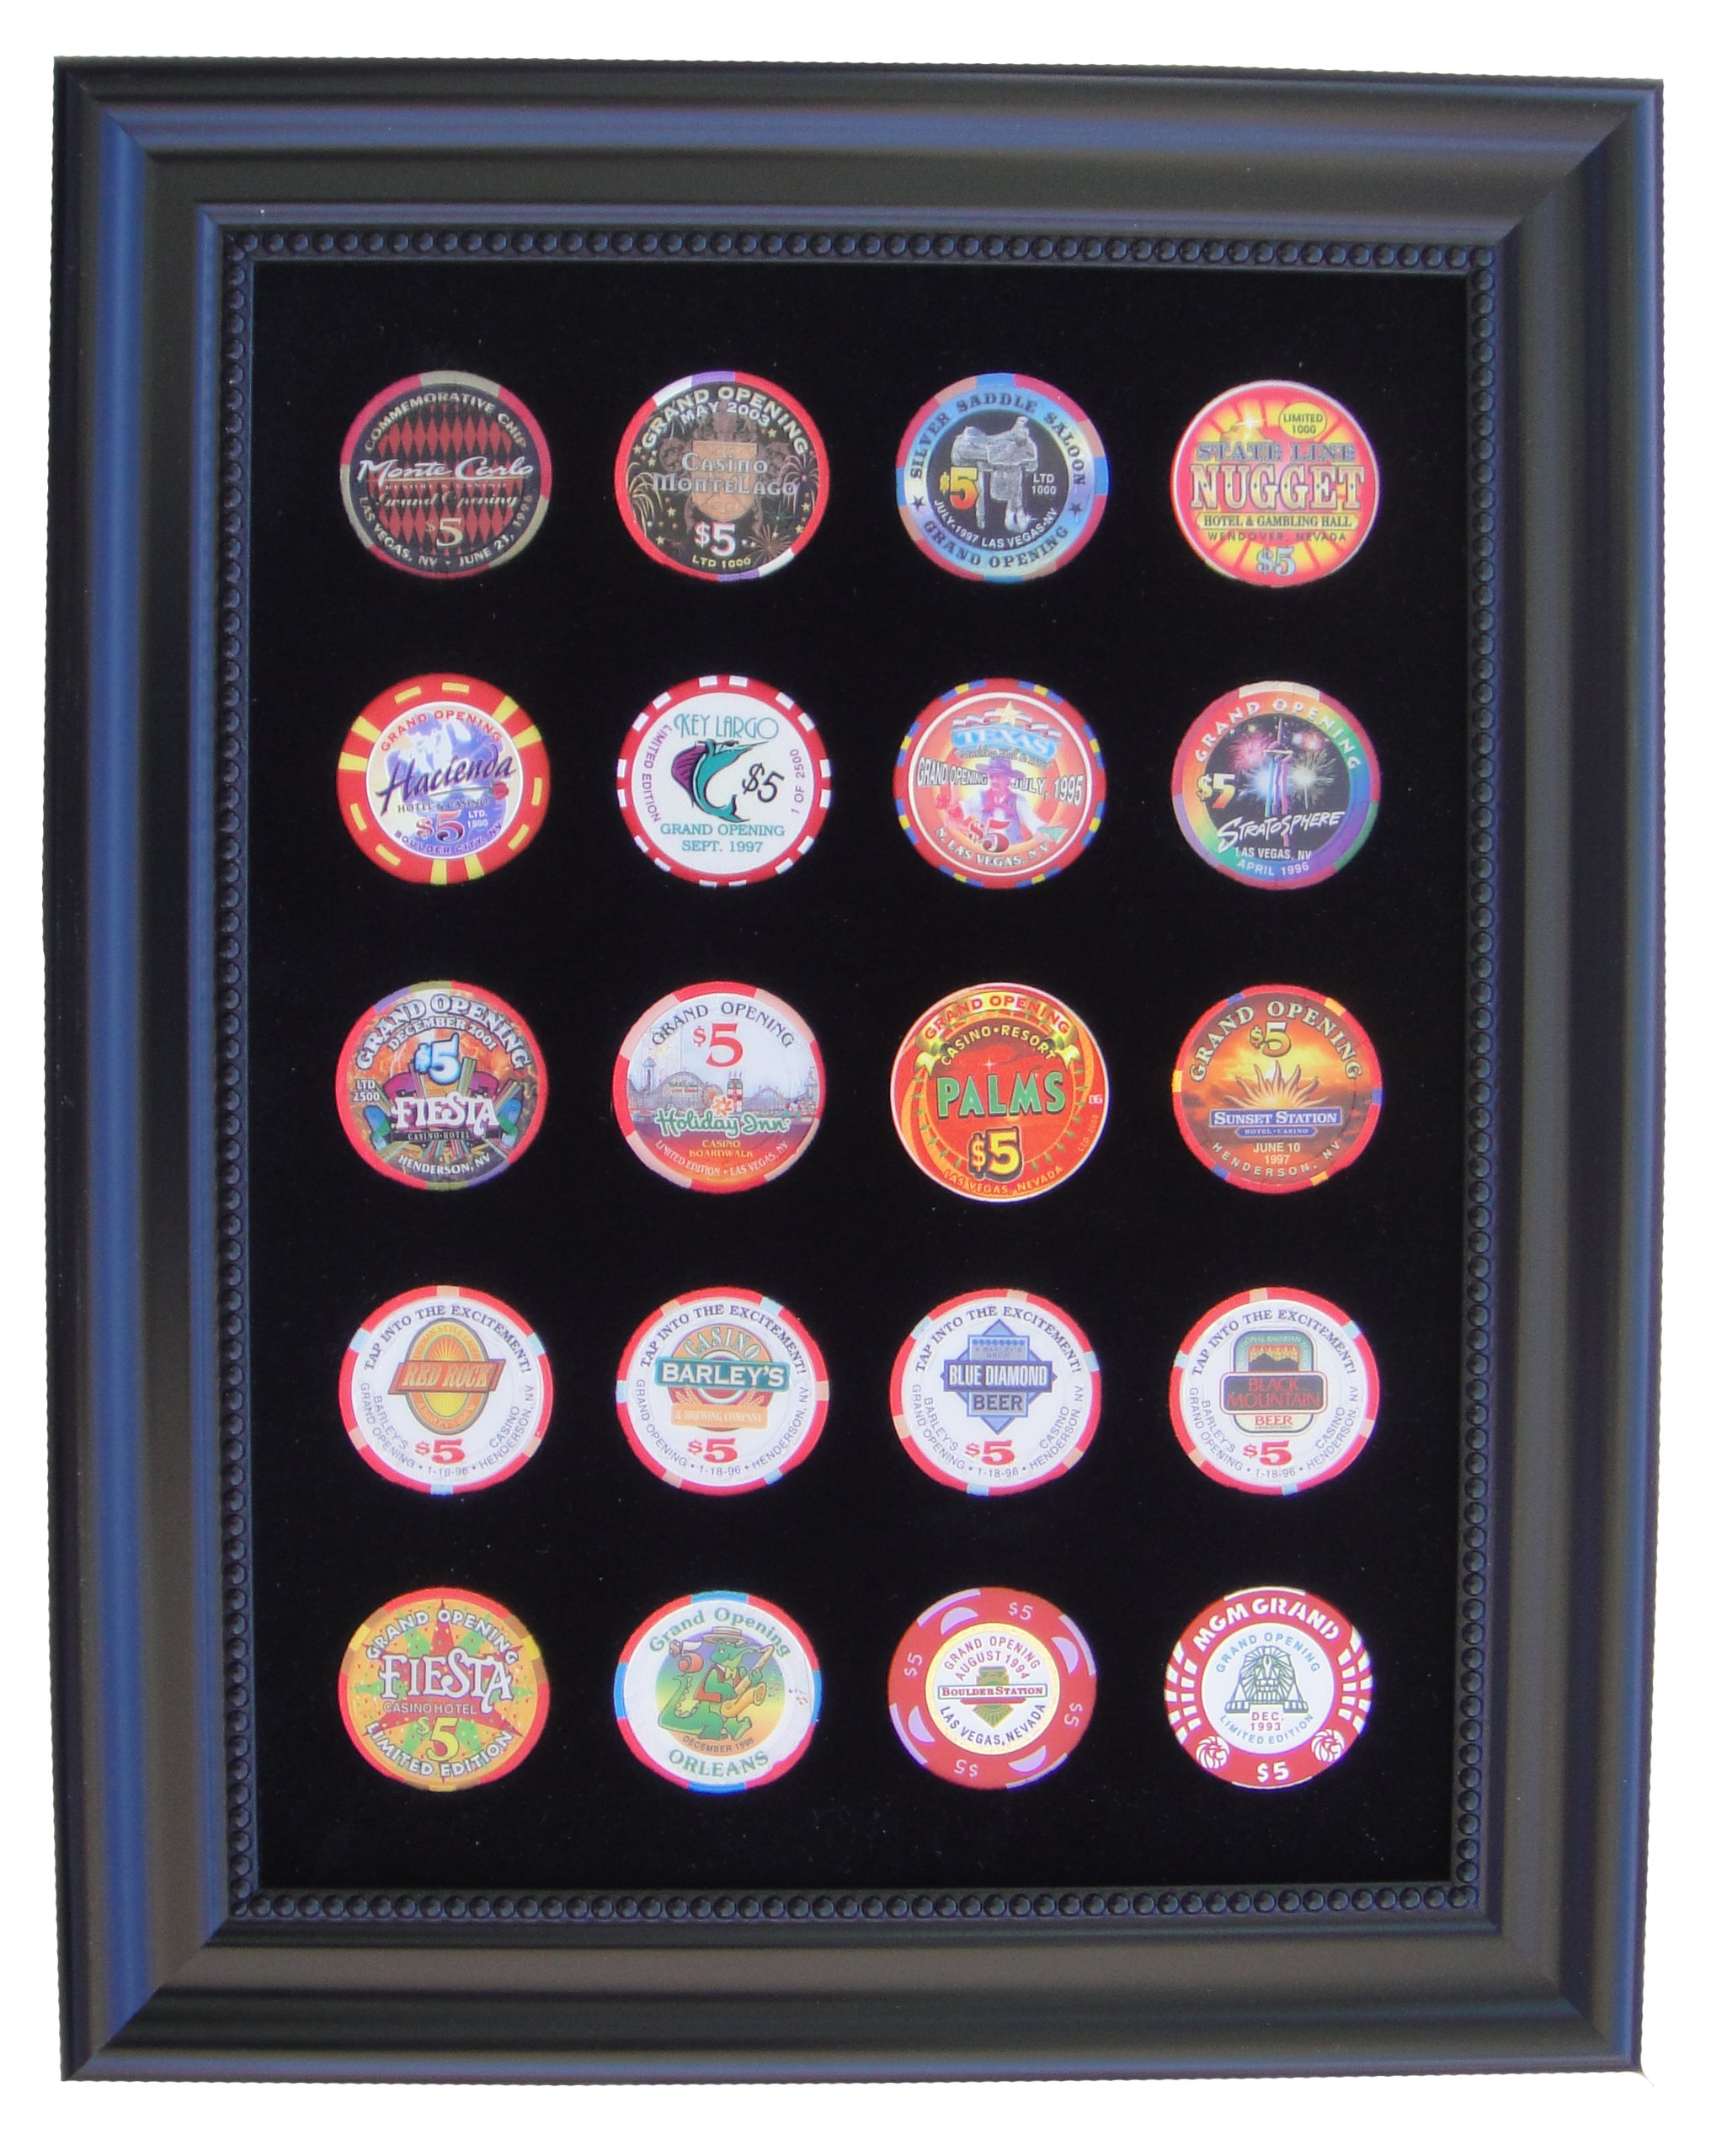 Black Casino Chip Display Frame for 20 Casino Poker Chips (not included) by Tiny Treasures, LLC.